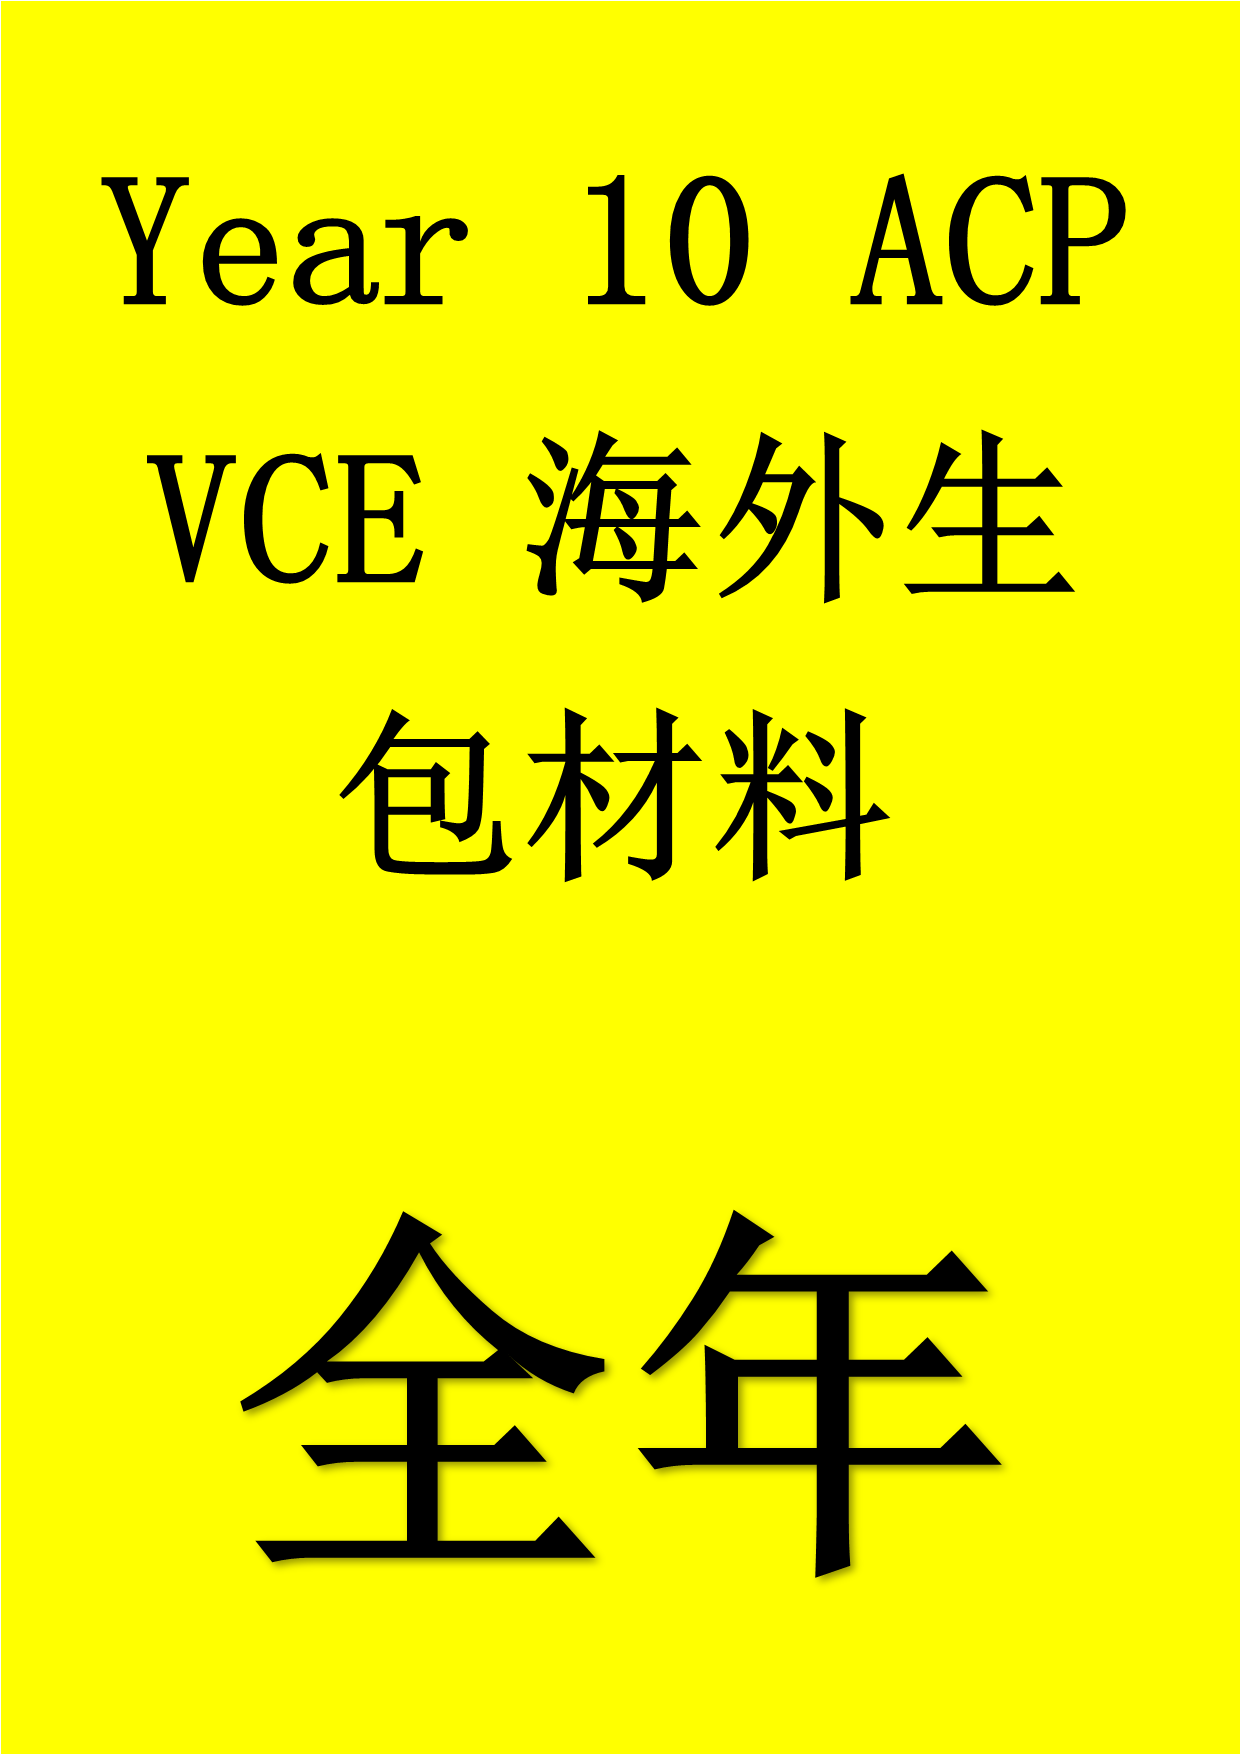 VCE Chinese Year 10 ACP Oversea Student Full year